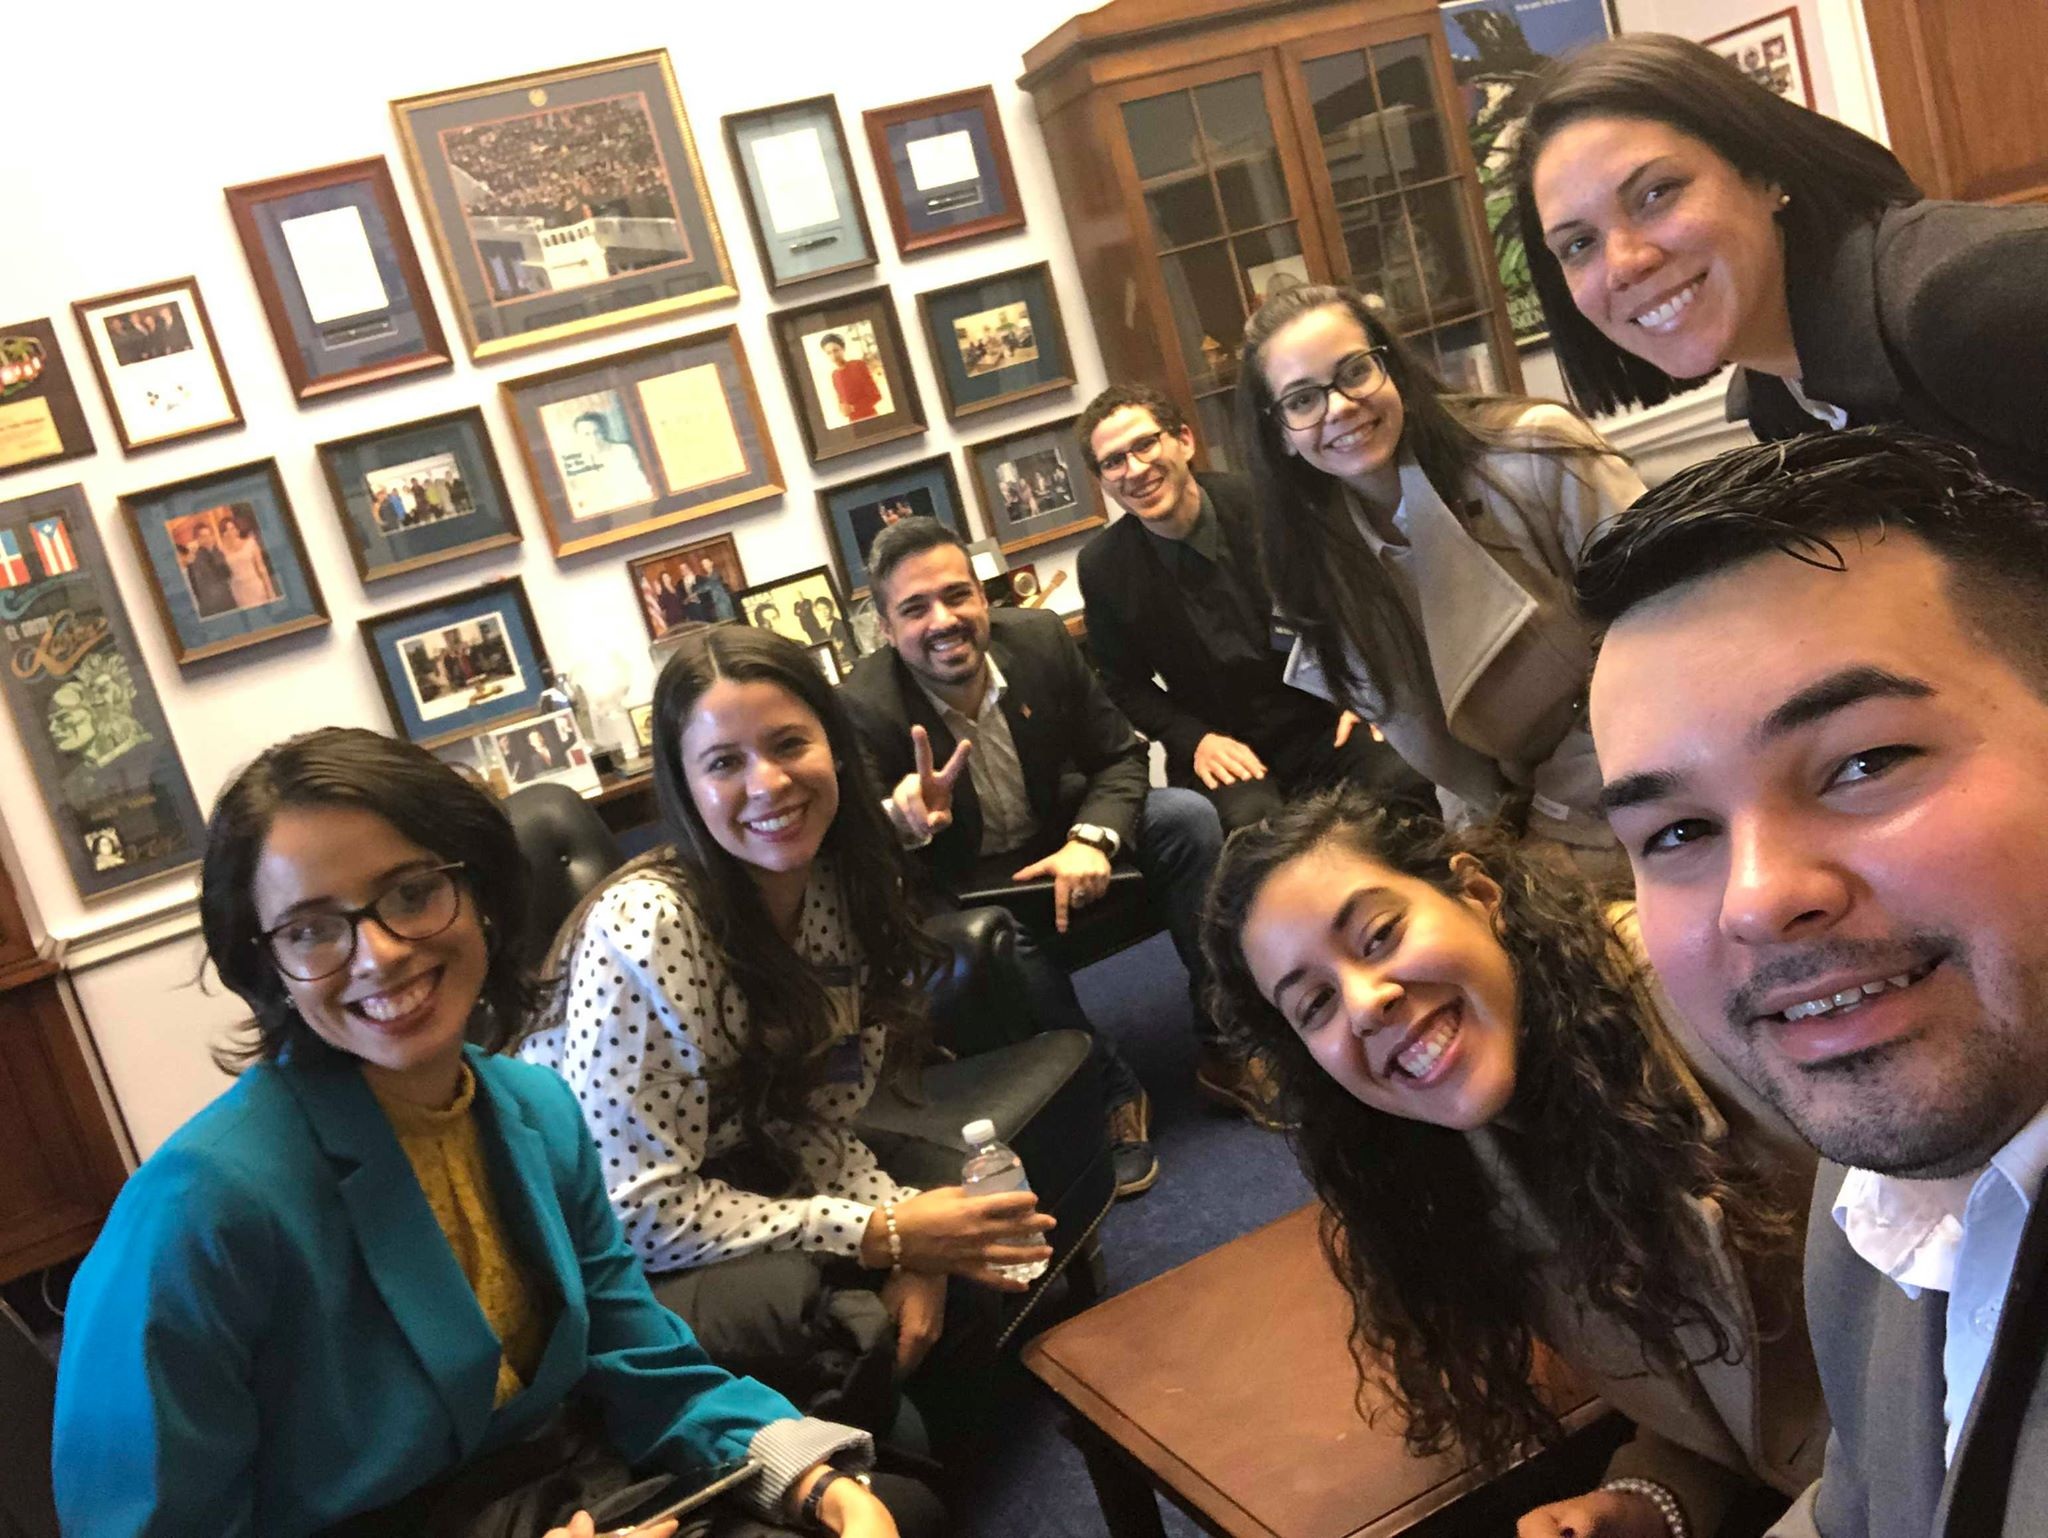 Selfie with Puerto Rican scientists at the office of Congresswoman Velázquez.